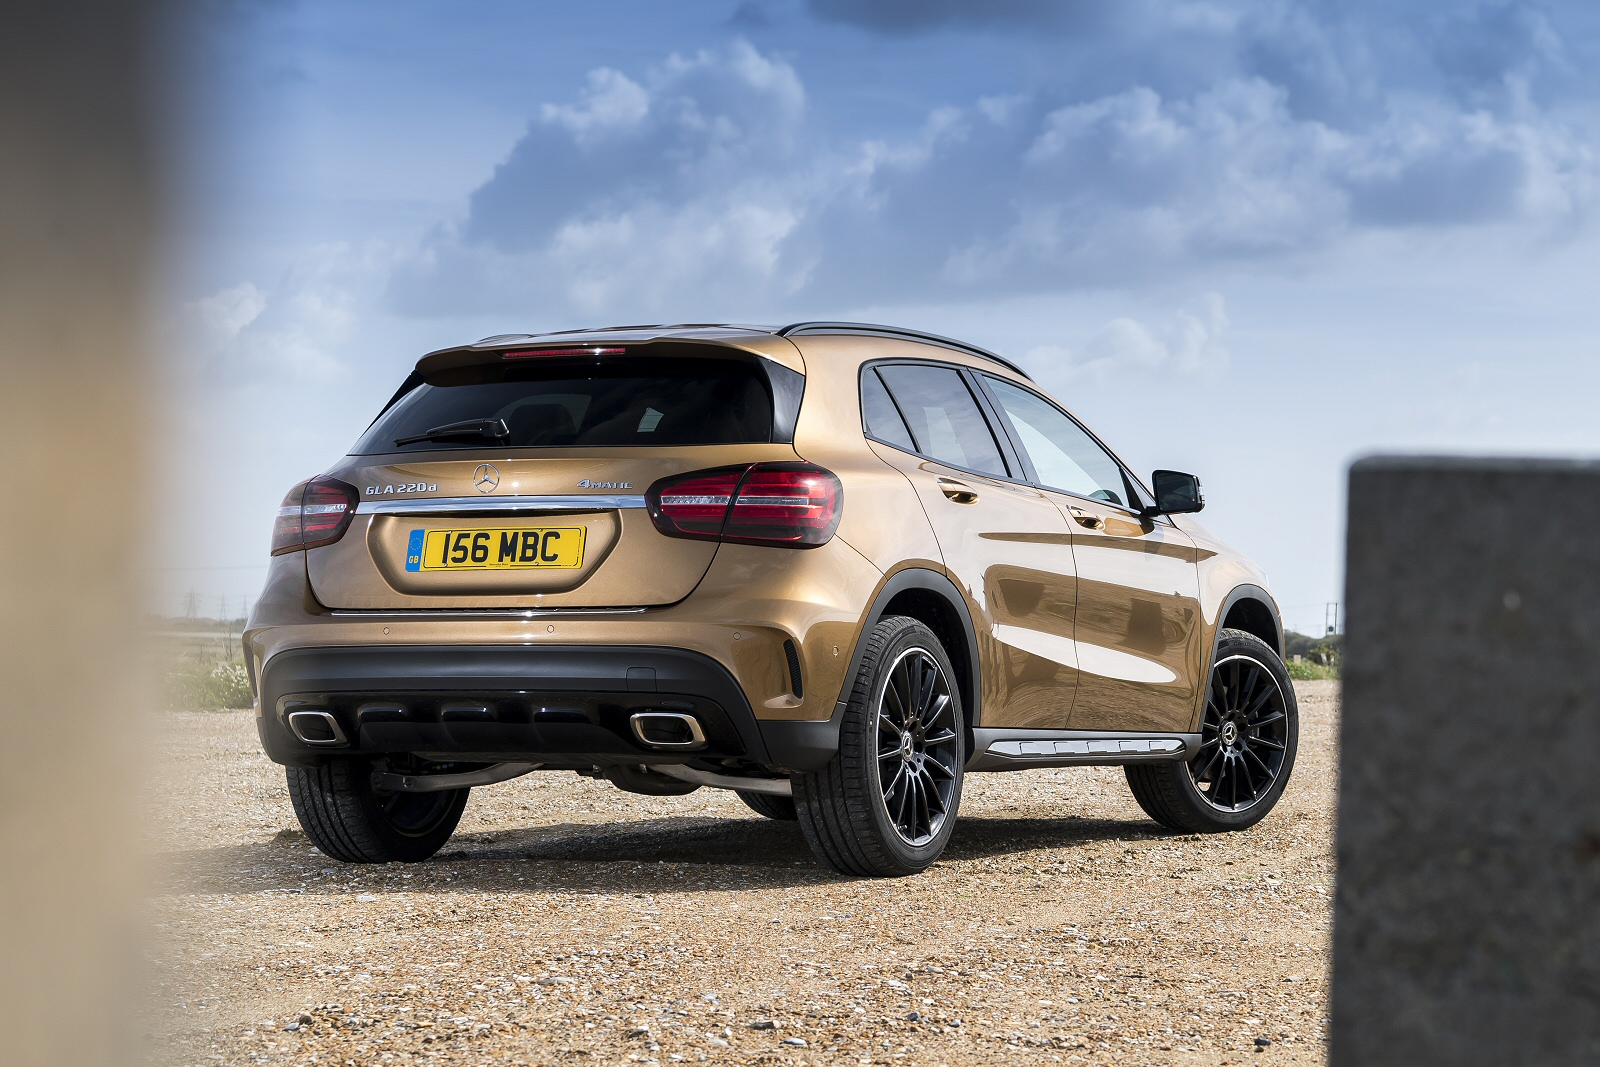 new mercedes benz gla 200 se executive 5dr petrol hatchback for sale vertu mercedes benz. Black Bedroom Furniture Sets. Home Design Ideas